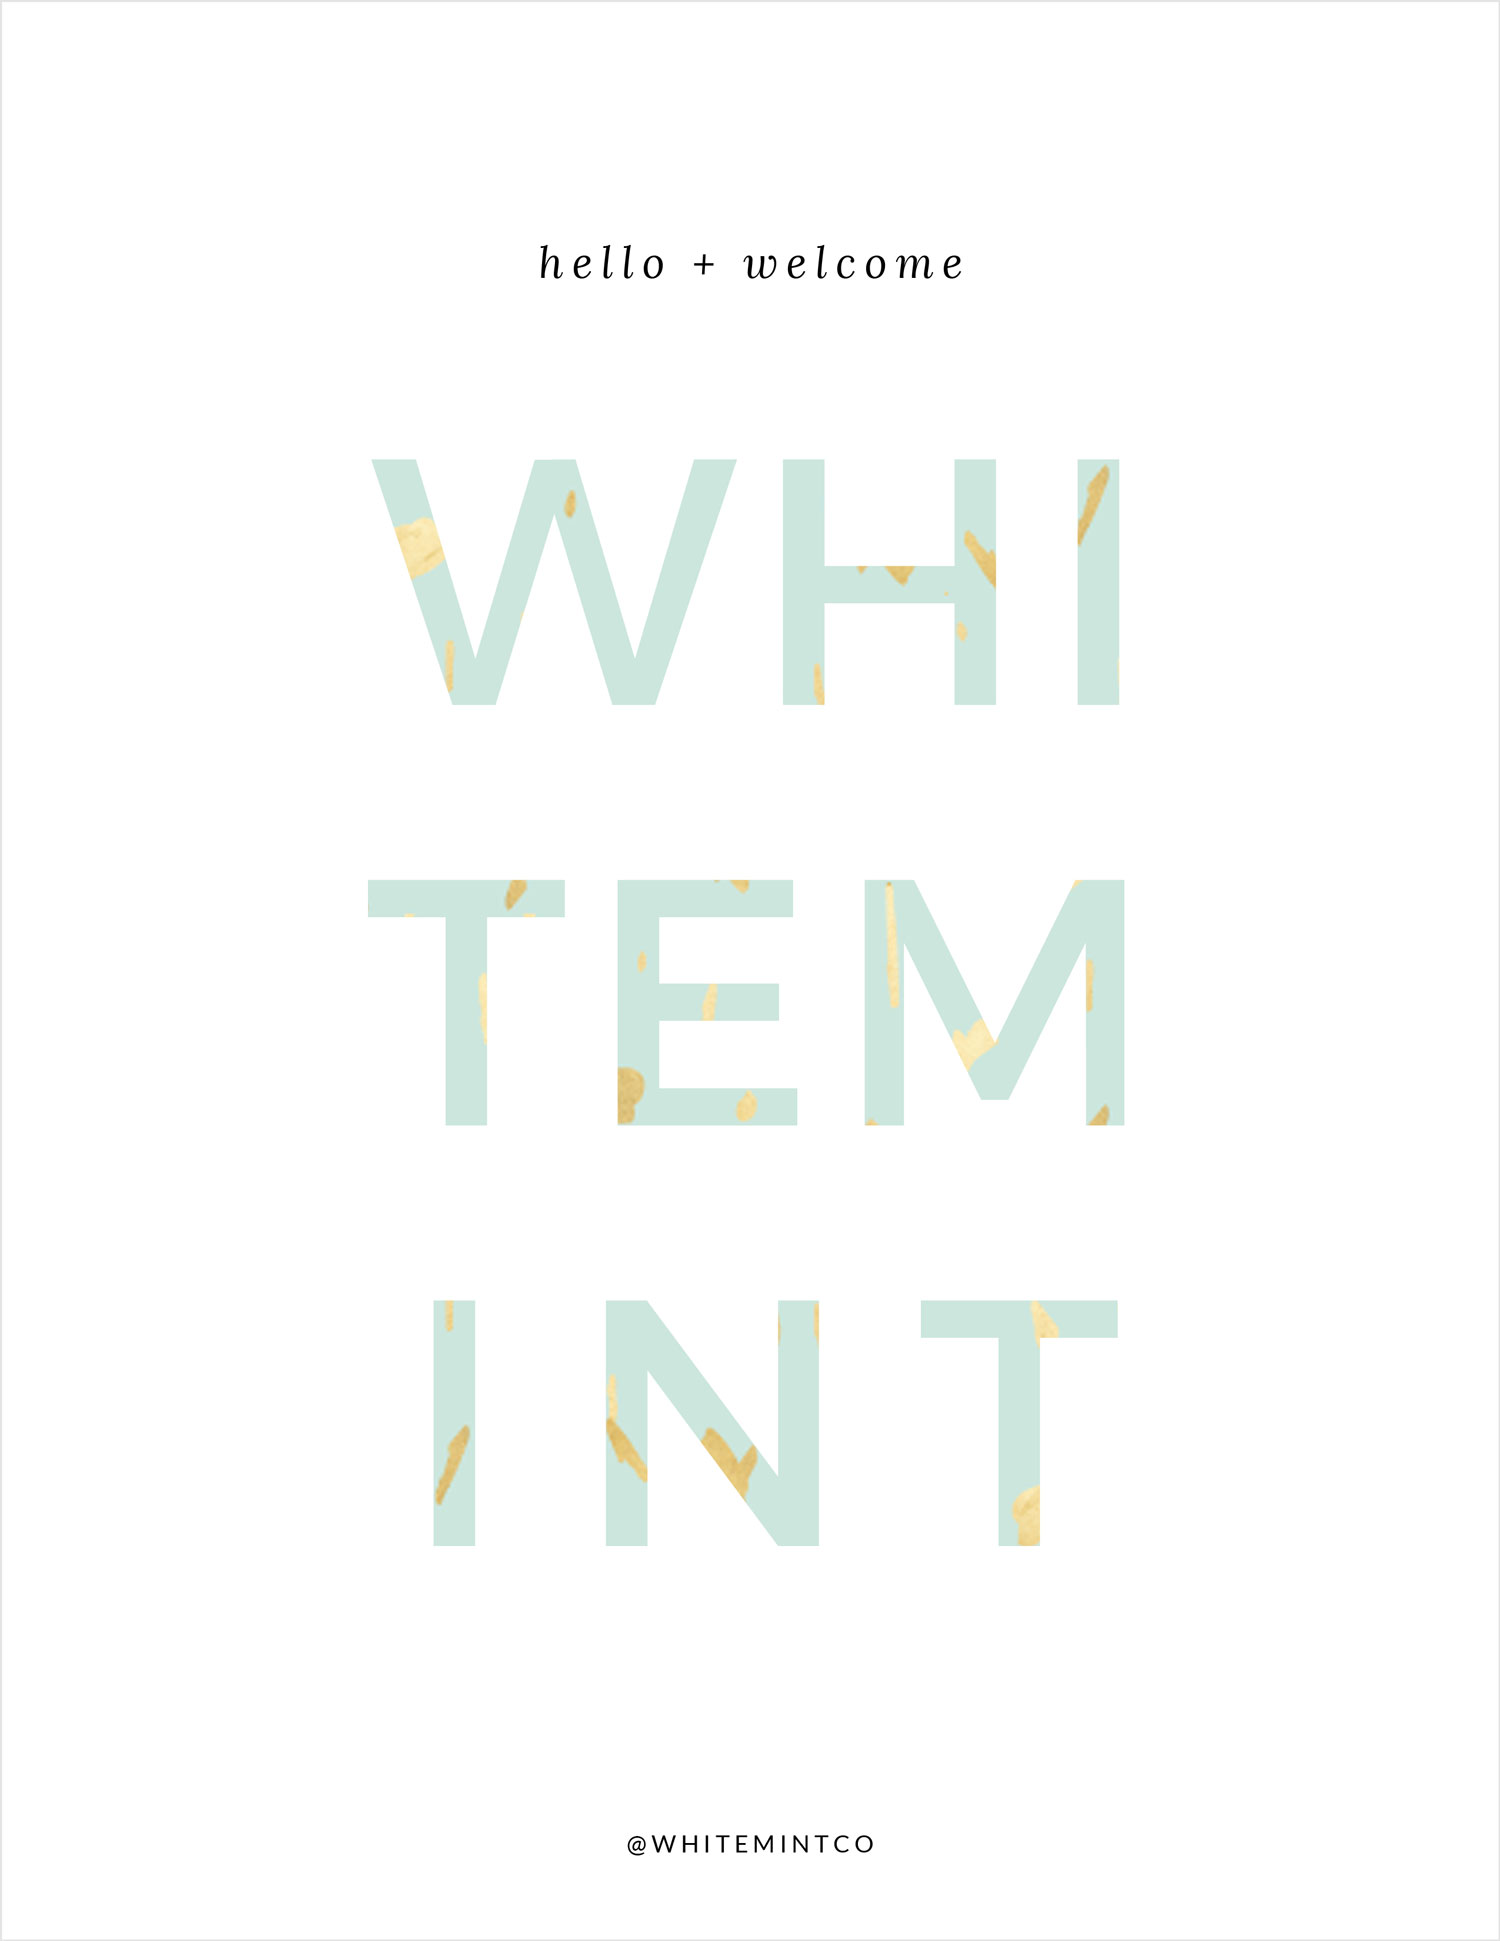 Welcome to White Mint Co.